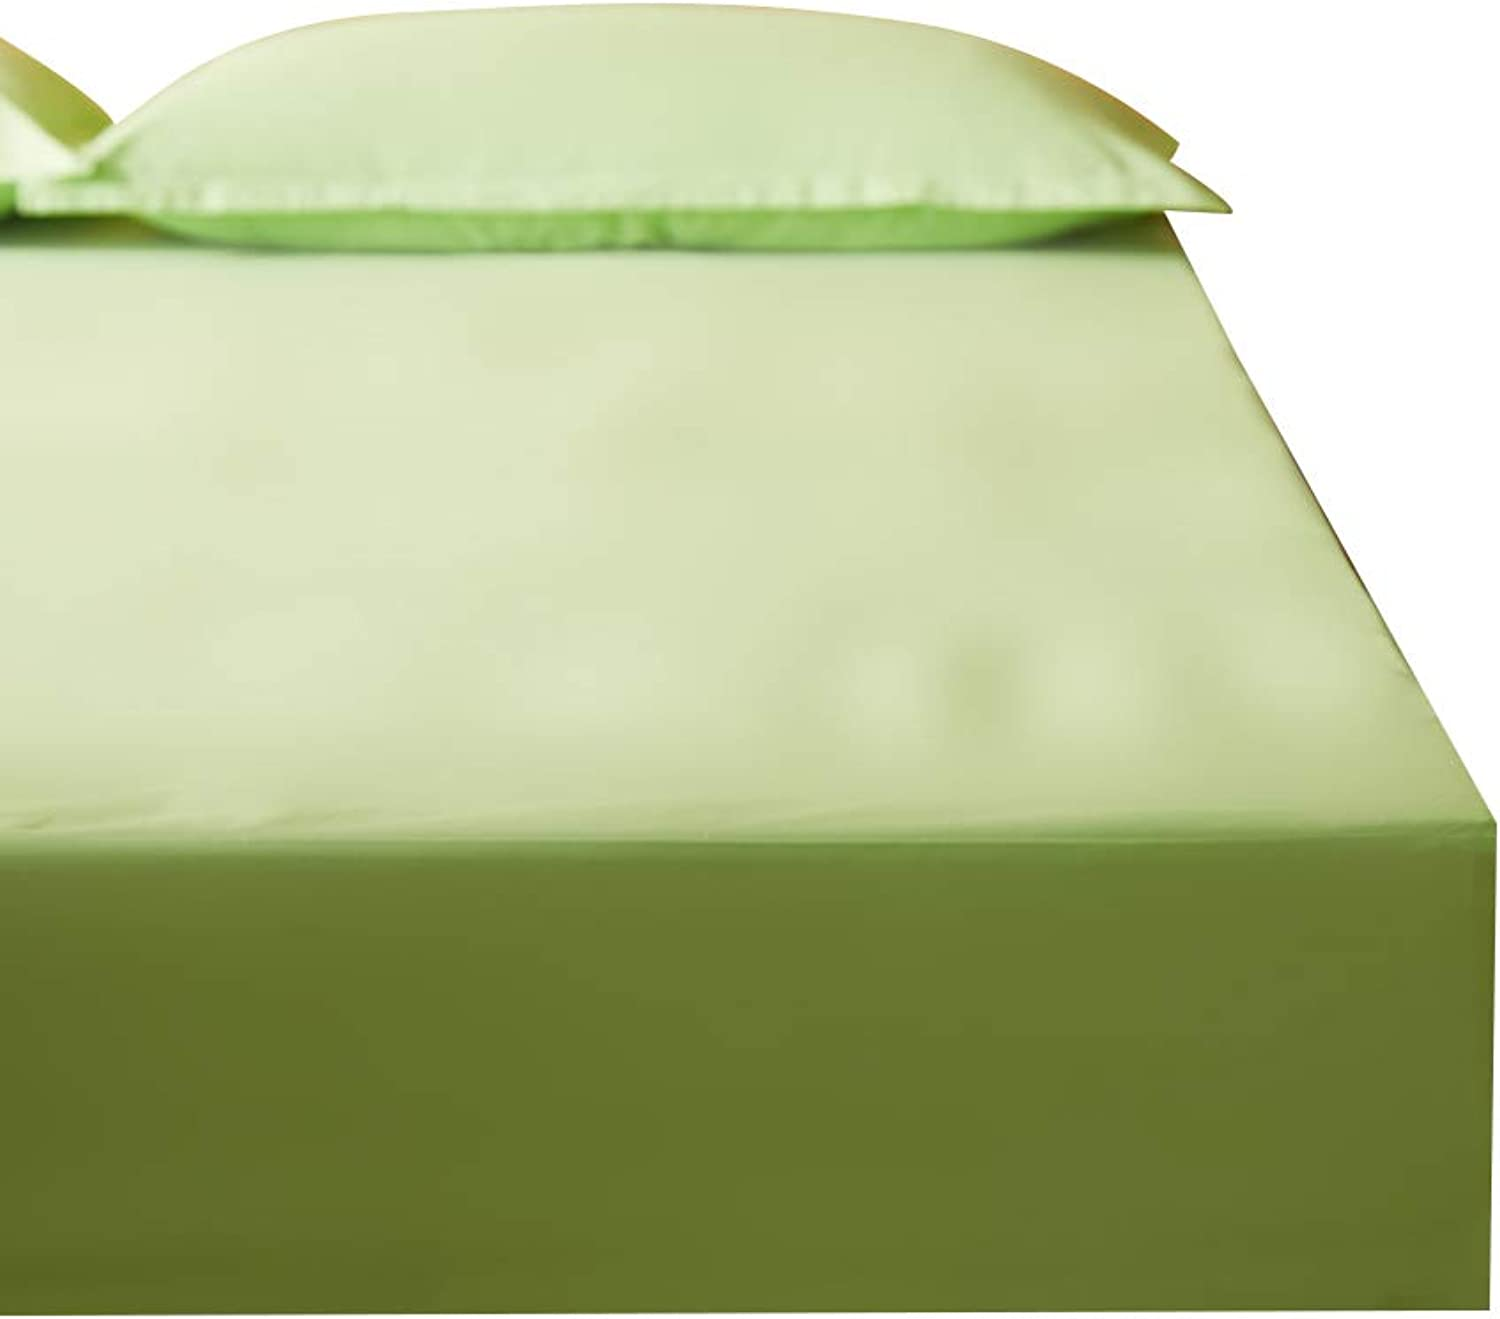 ZHAOHUI Mattress Predector Cotton Waterproof Hypoallergenic Breathable Dust-Proof Anti-mite Ultra-Thin Soft Noiseless, 3 colors, 4 Sizes (color   Green, Size   200X220cm)